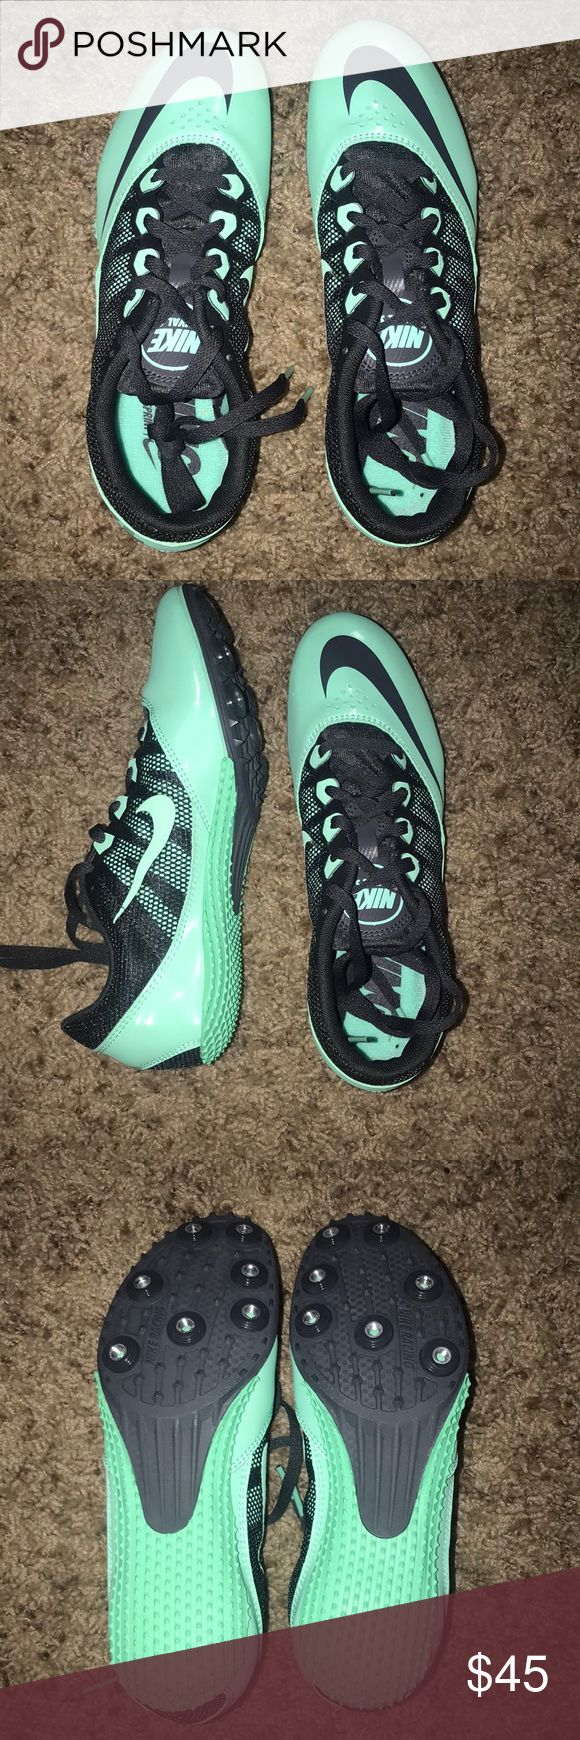 NIKE RUNNING/TRACK SHOES NWT nike track shoes including spikes. can be men's size 5 or women's size 7. NEVER WORN Nike Shoes Athletic Shoes